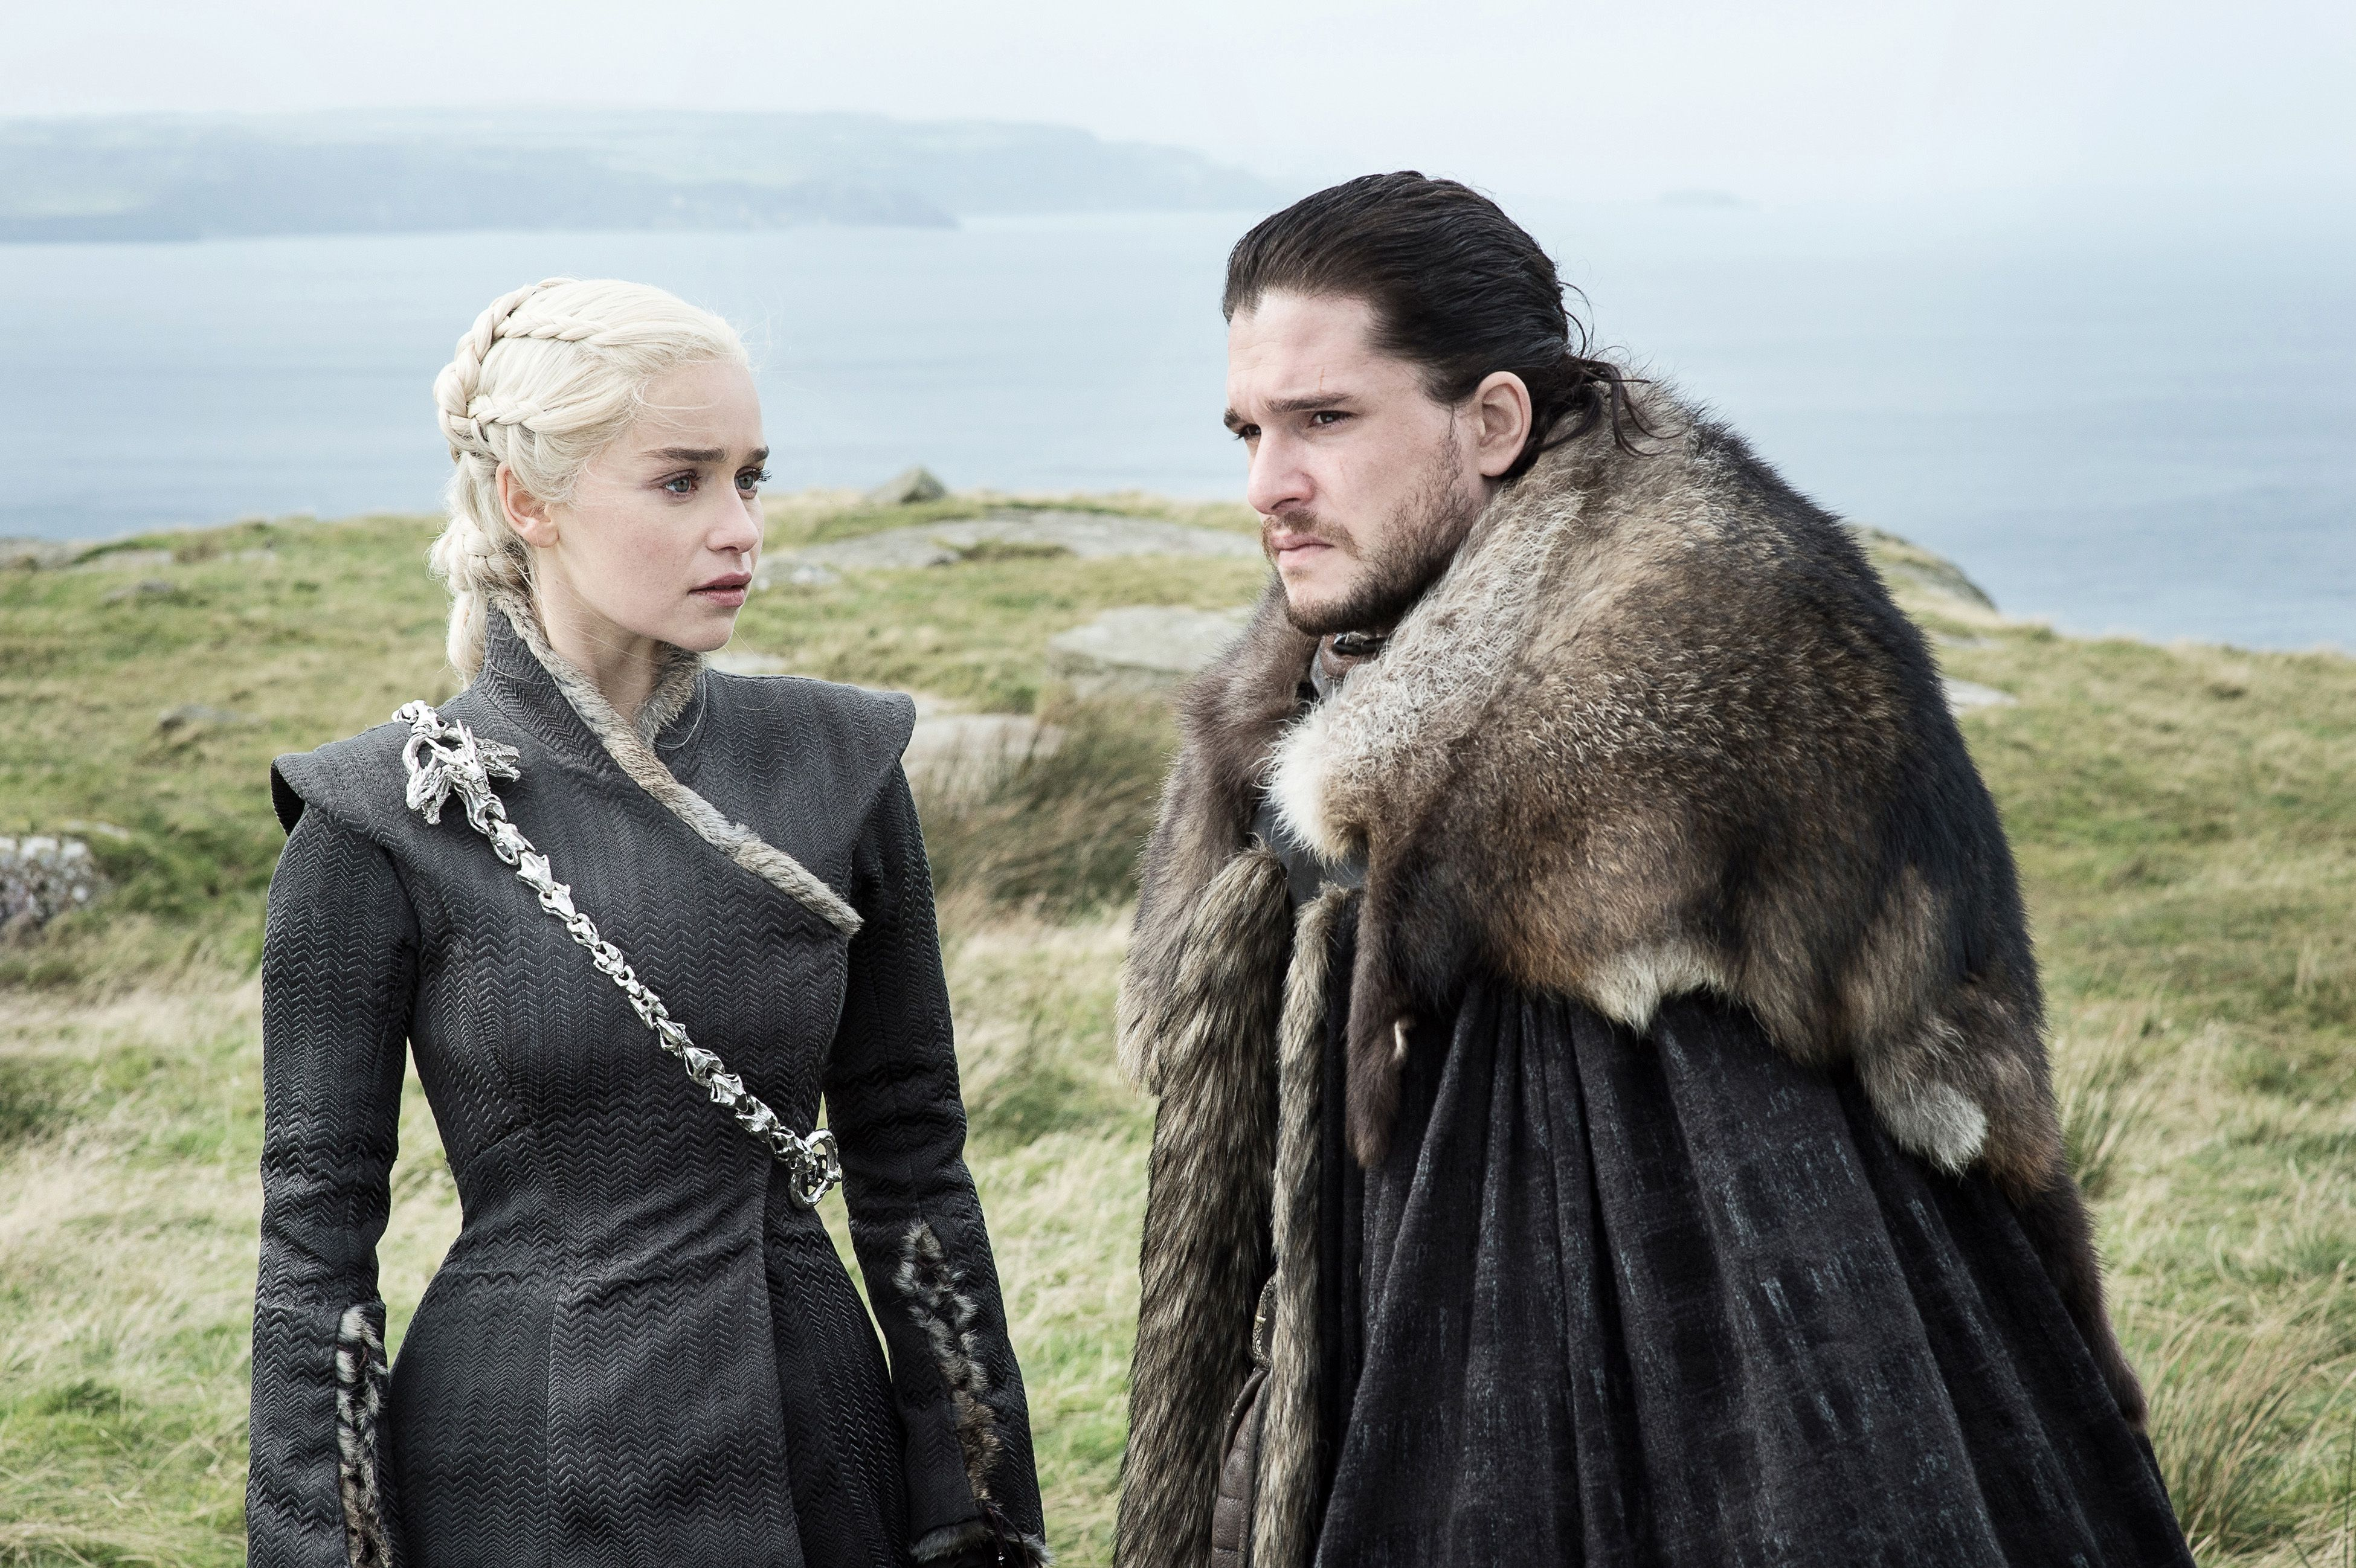 Game of Thrones' Season 8 Will Premiere in April 2019